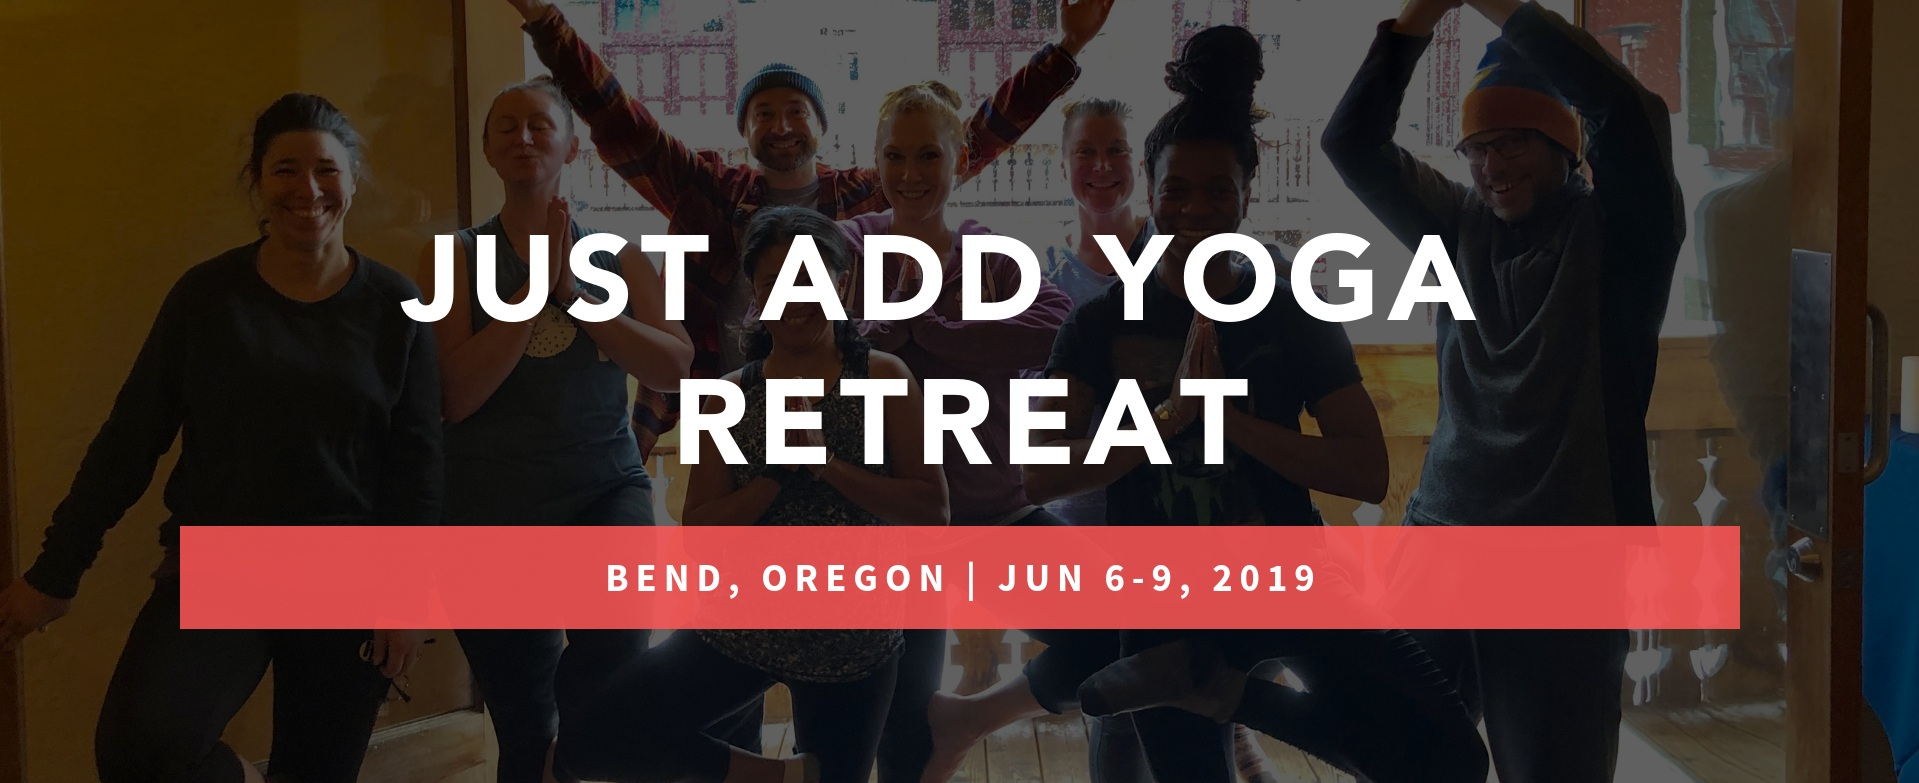 Just Add Yoga Retreat Bend Header June 2019.png